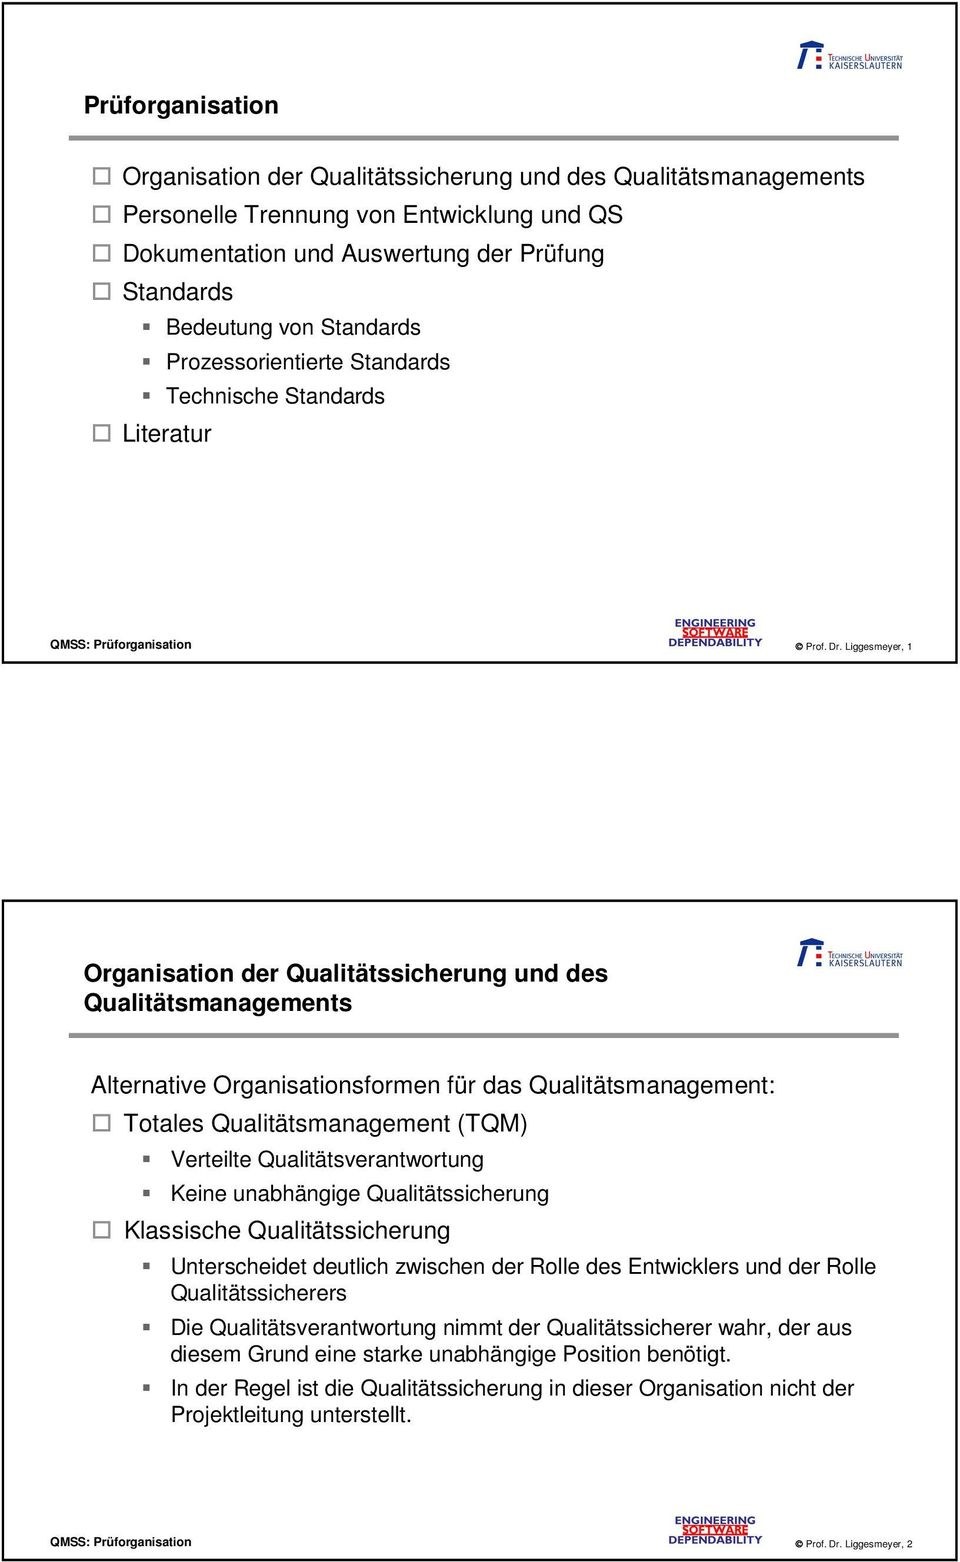 Liggesmeyer, 1 Organisation der Qualitätssicherung und des Qualitätsmanagements Alternative Organisationsformen für das Qualitätsmanagement: Totales Qualitätsmanagement (TQM) Verteilte